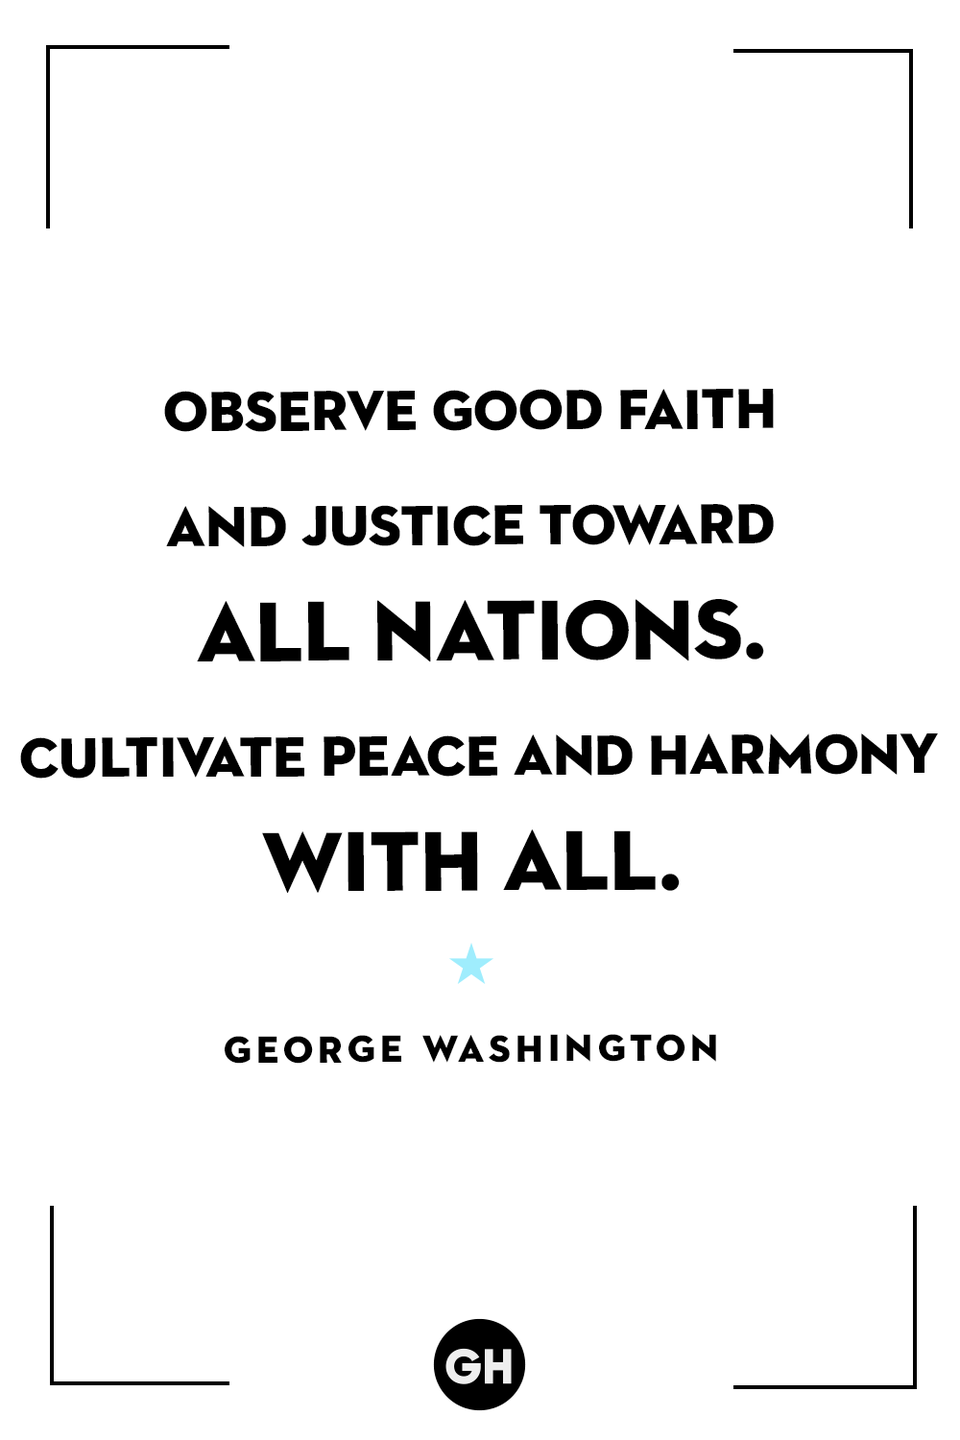 <p>Observe good faith and justice toward all nations. Cultivate peace and harmony with all.</p>